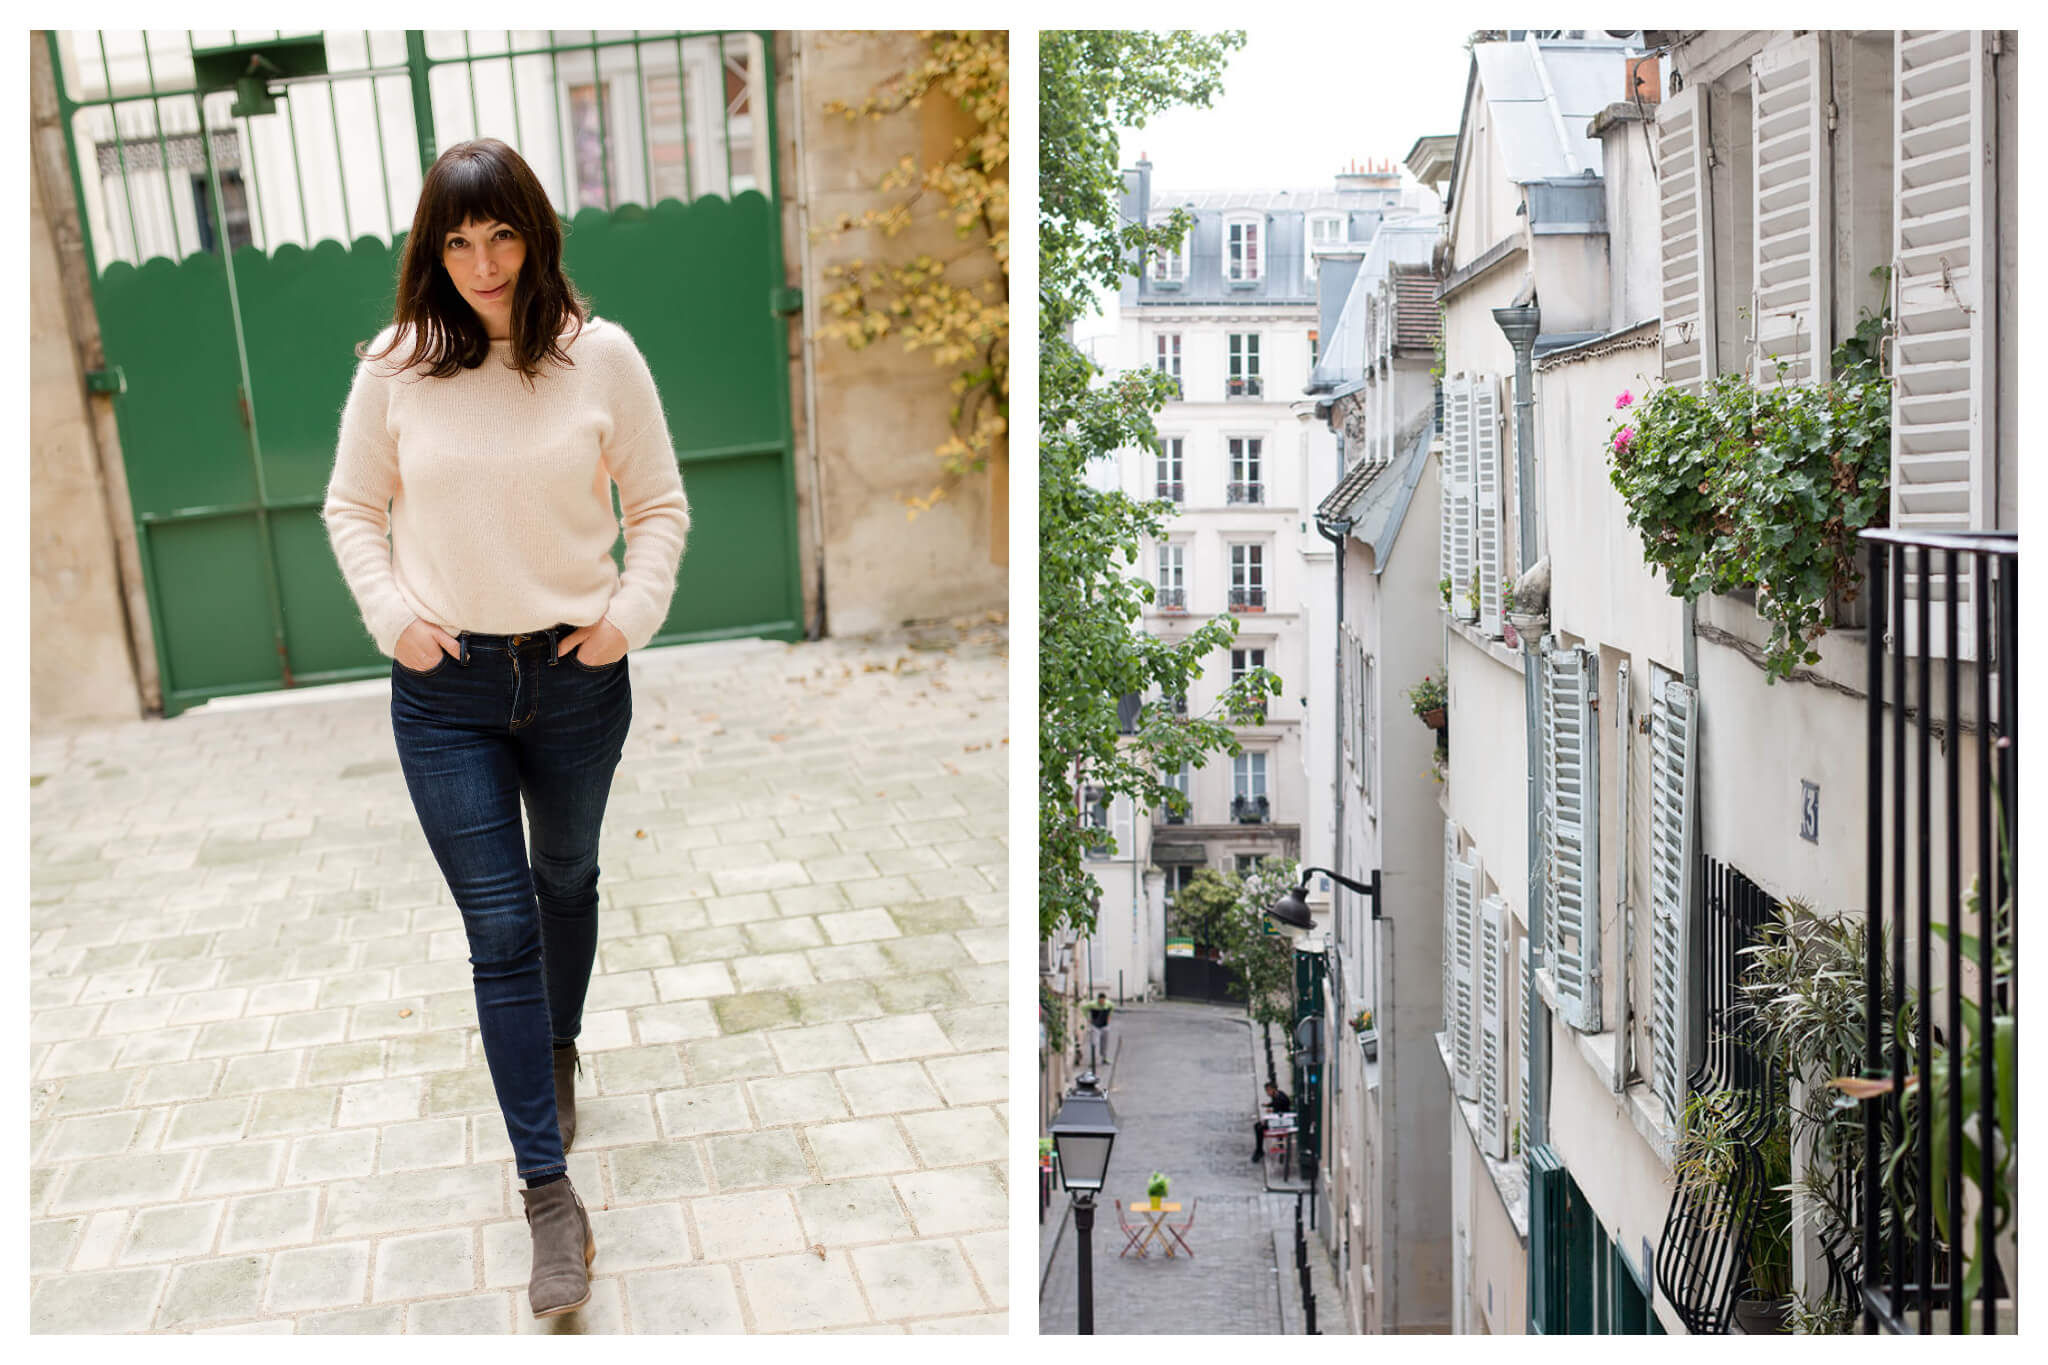 On left: Rebecca Plotnick, travel photographer and blogger at Everyday Parisian, on a stroll through Paris. On right: The charming shuttered facades of Montmartre stay open on a warm day.